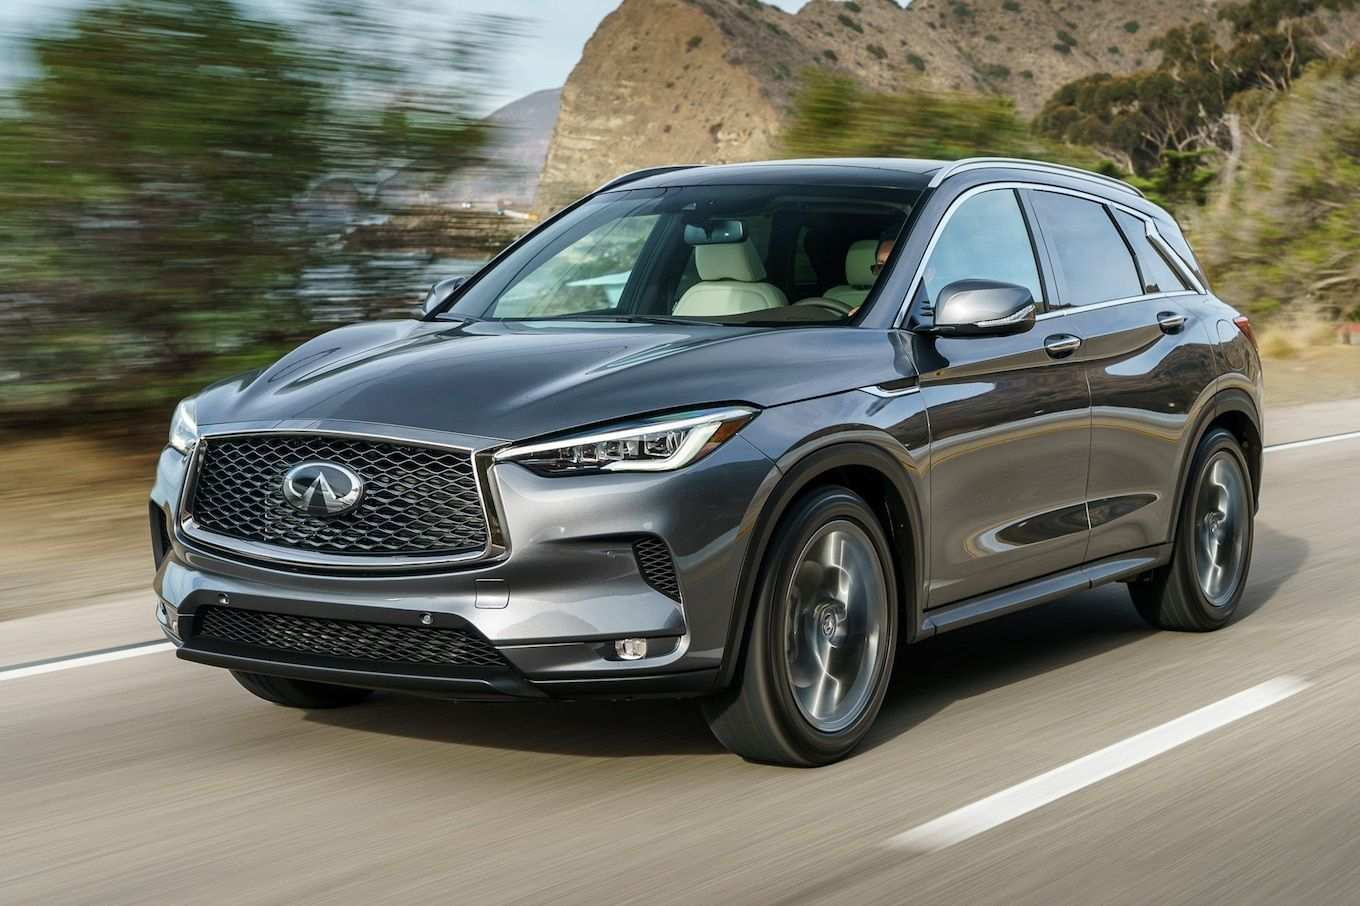 78 Best Review 2020 Infiniti Qx50 Exterior Concept by 2020 Infiniti Qx50 Exterior